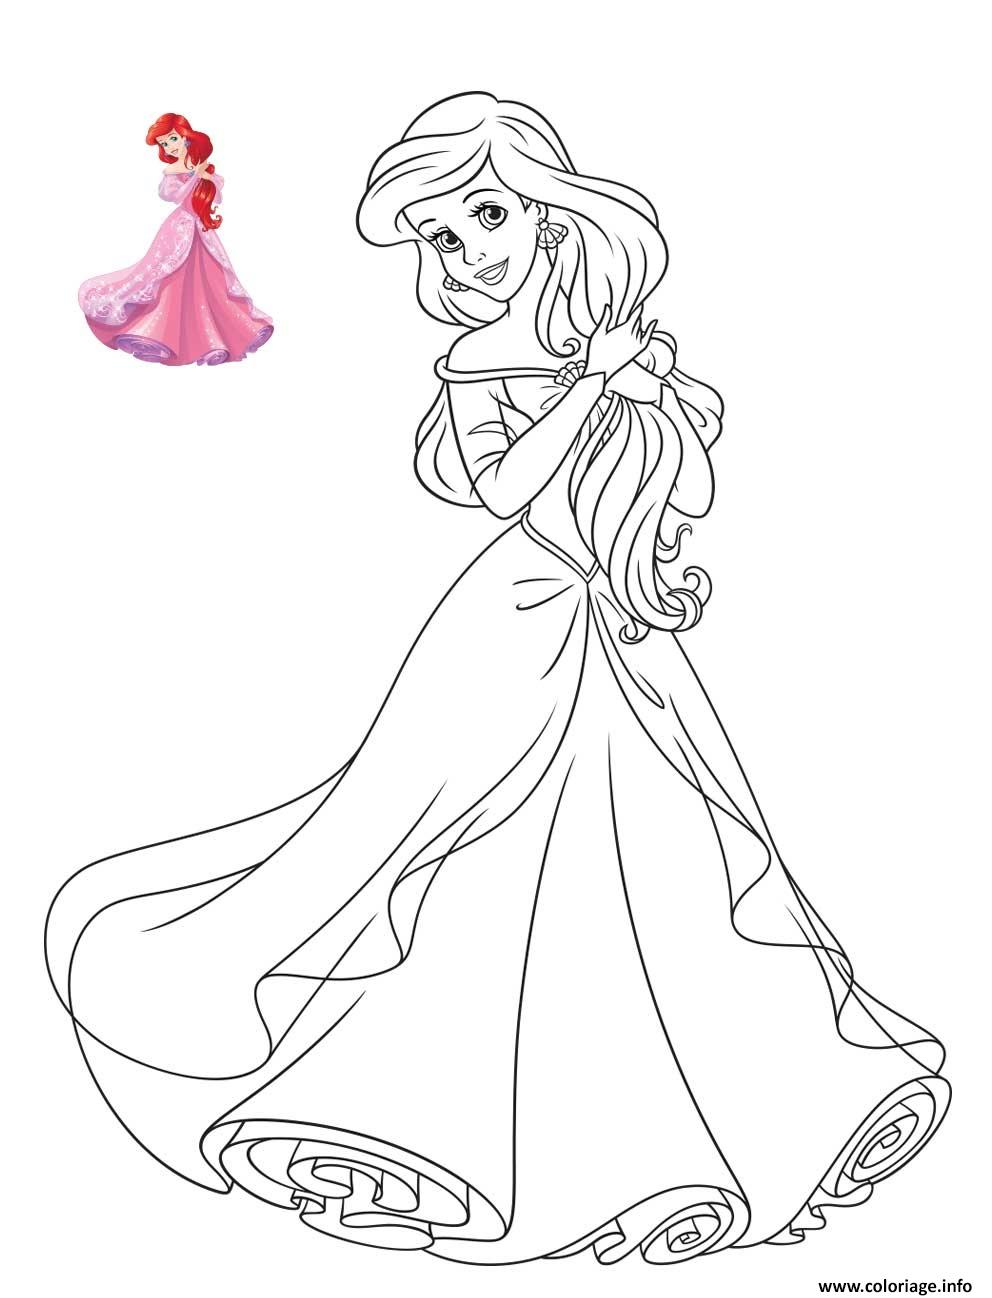 New Coloriage Bebe Princesse Disney Charmant Coloriage Bebe